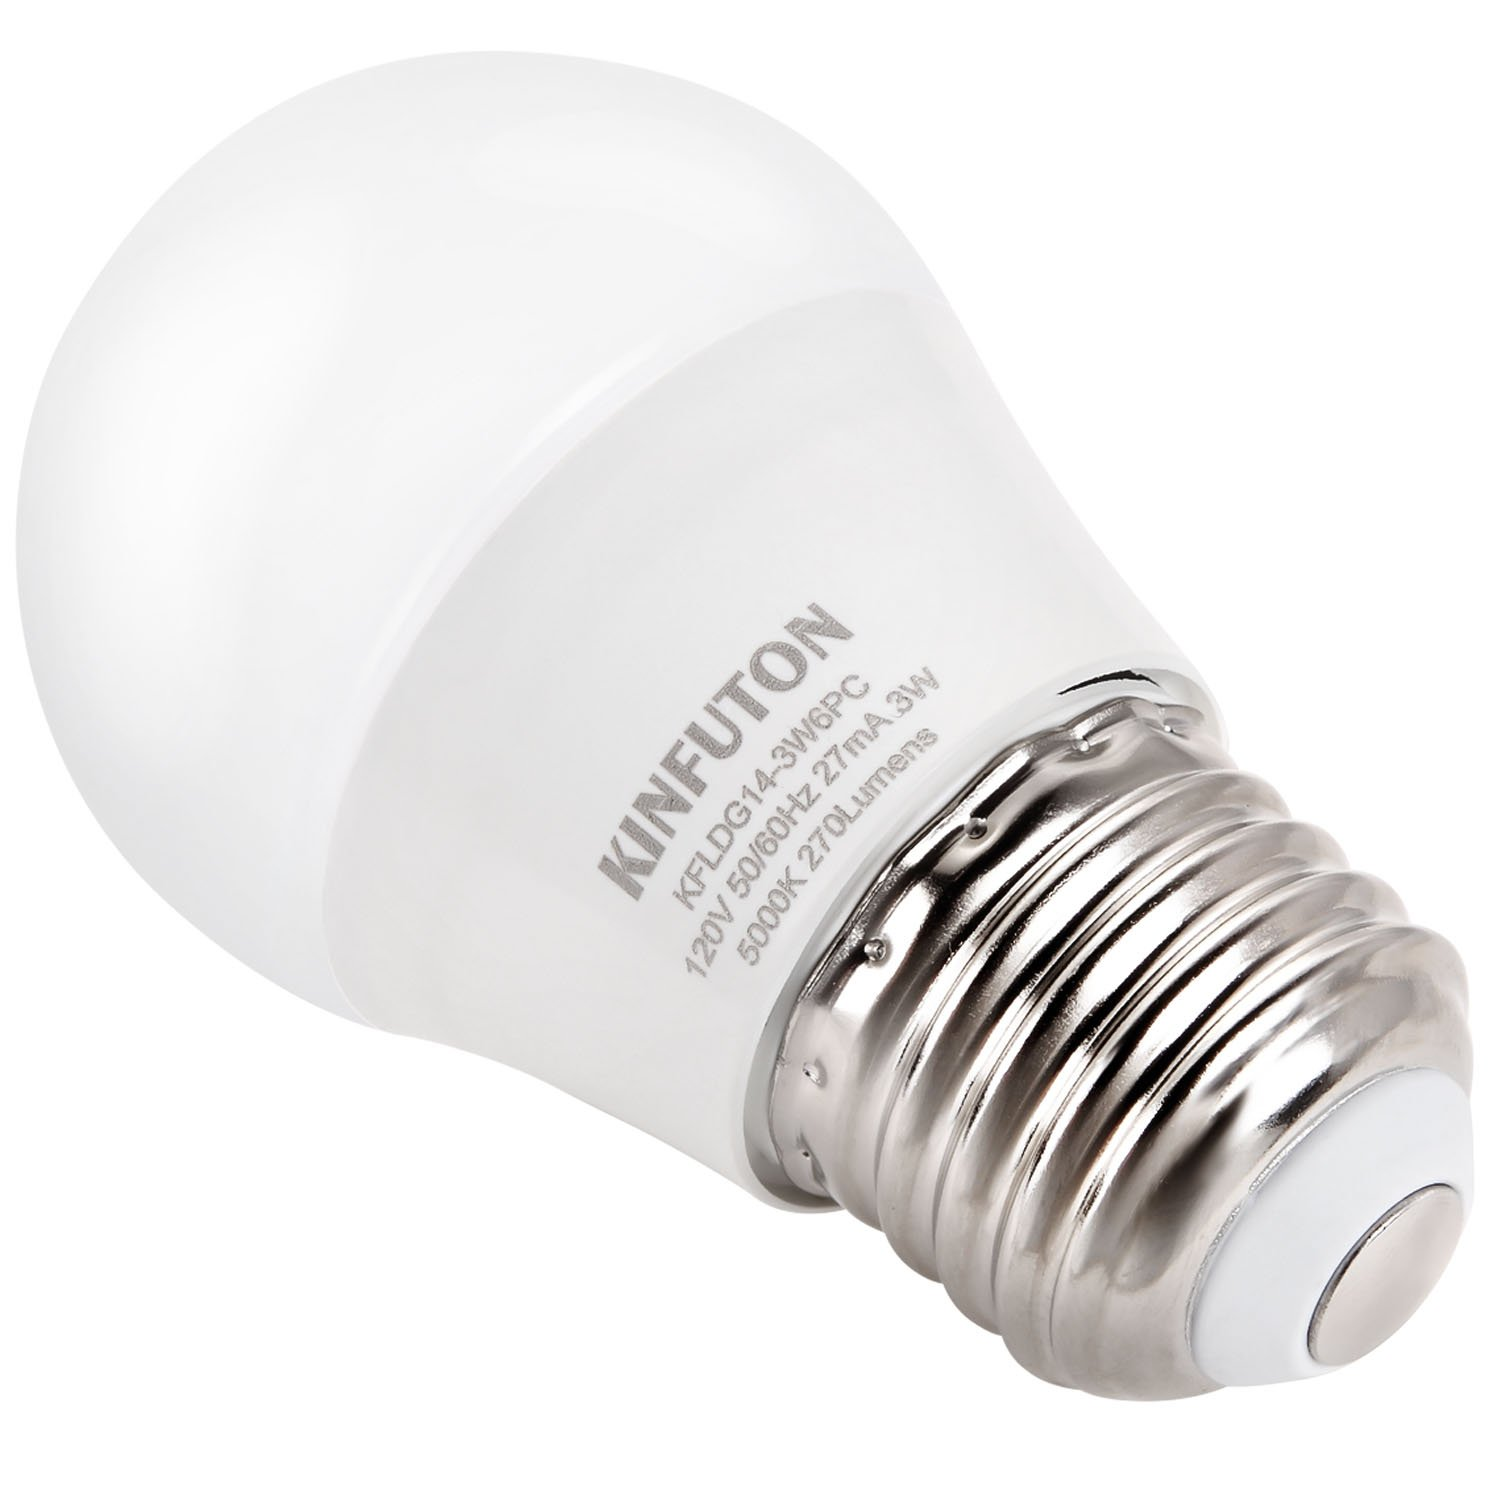 KINFUTON G14 3W Small LED Bulb Daylight White 5000K for Bathroom